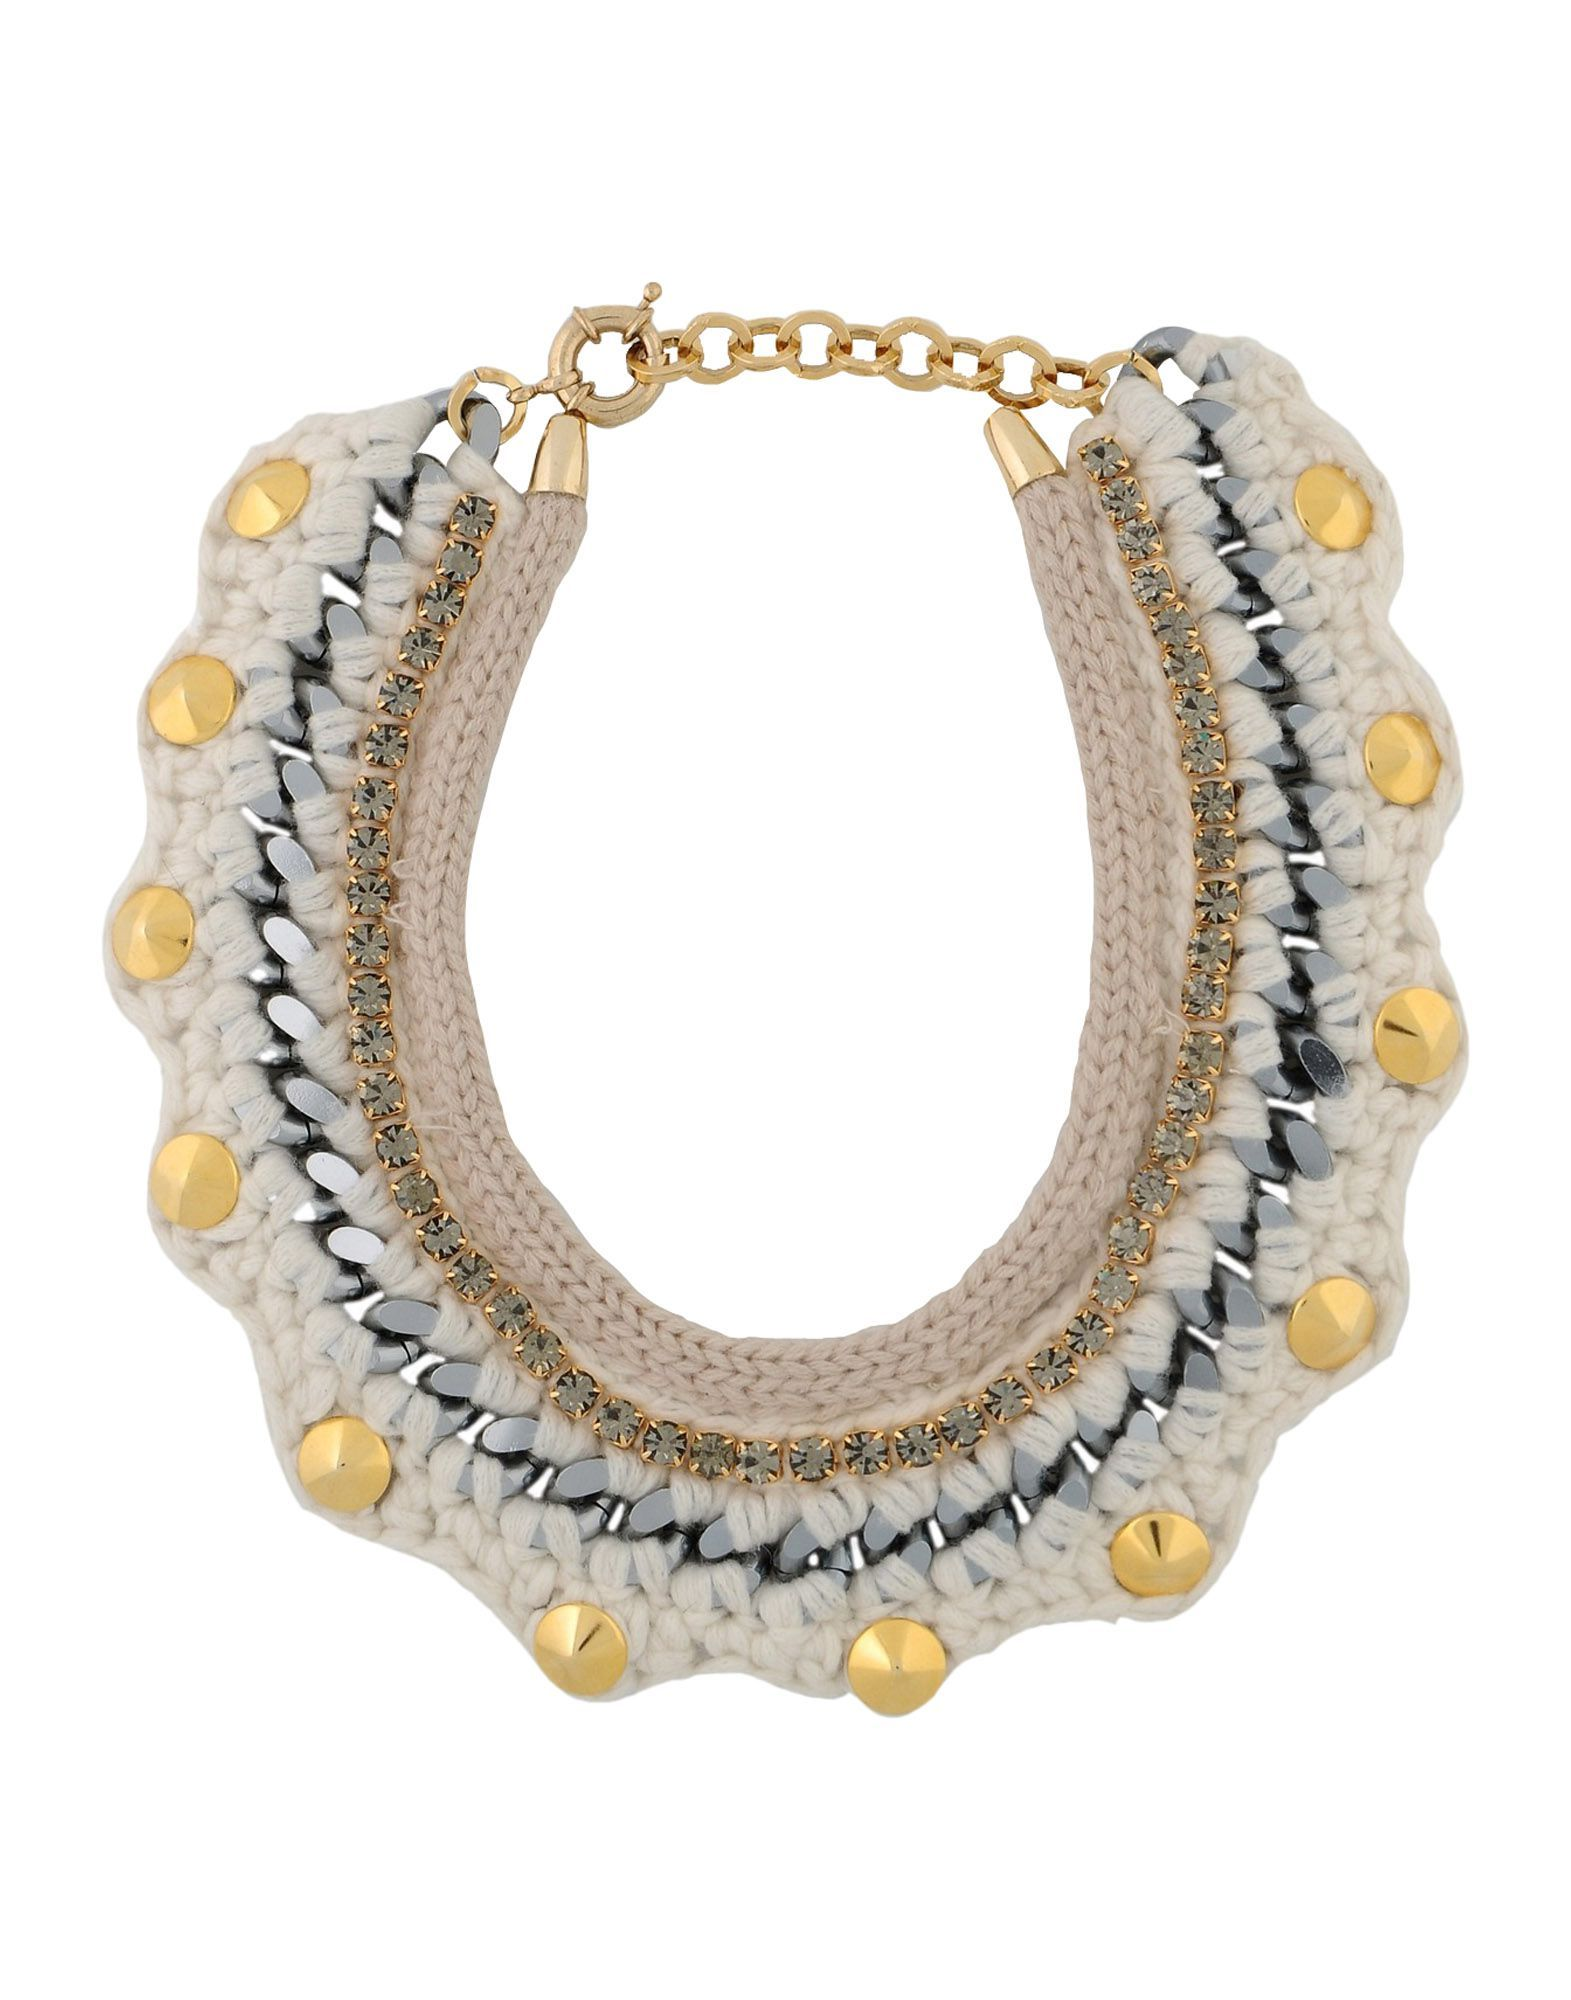 Necklace by Nicola Luccarini